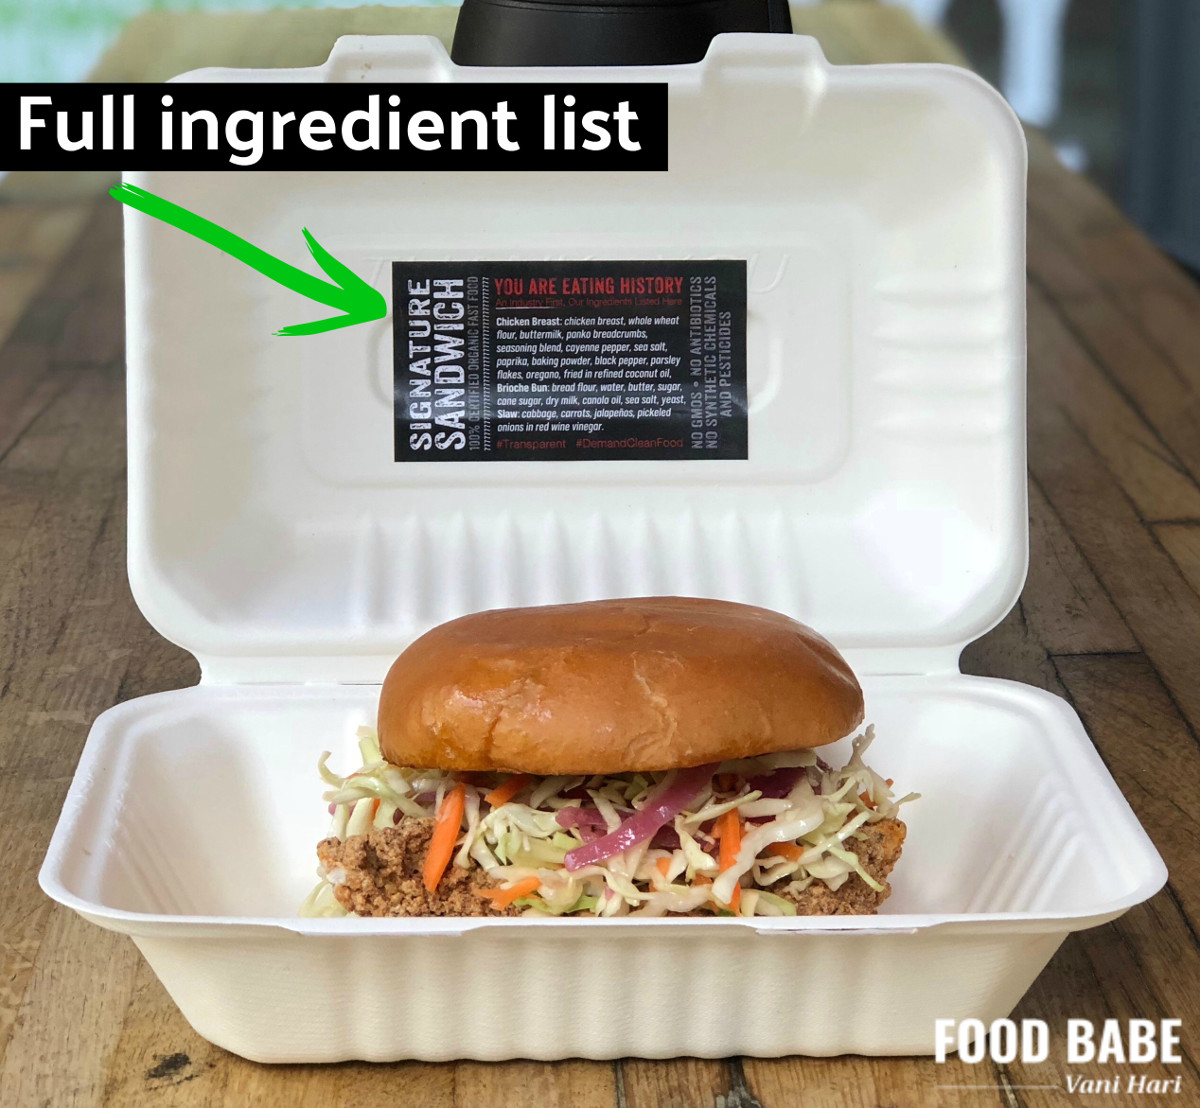 You Wont Believe This New Fast Food Packaging